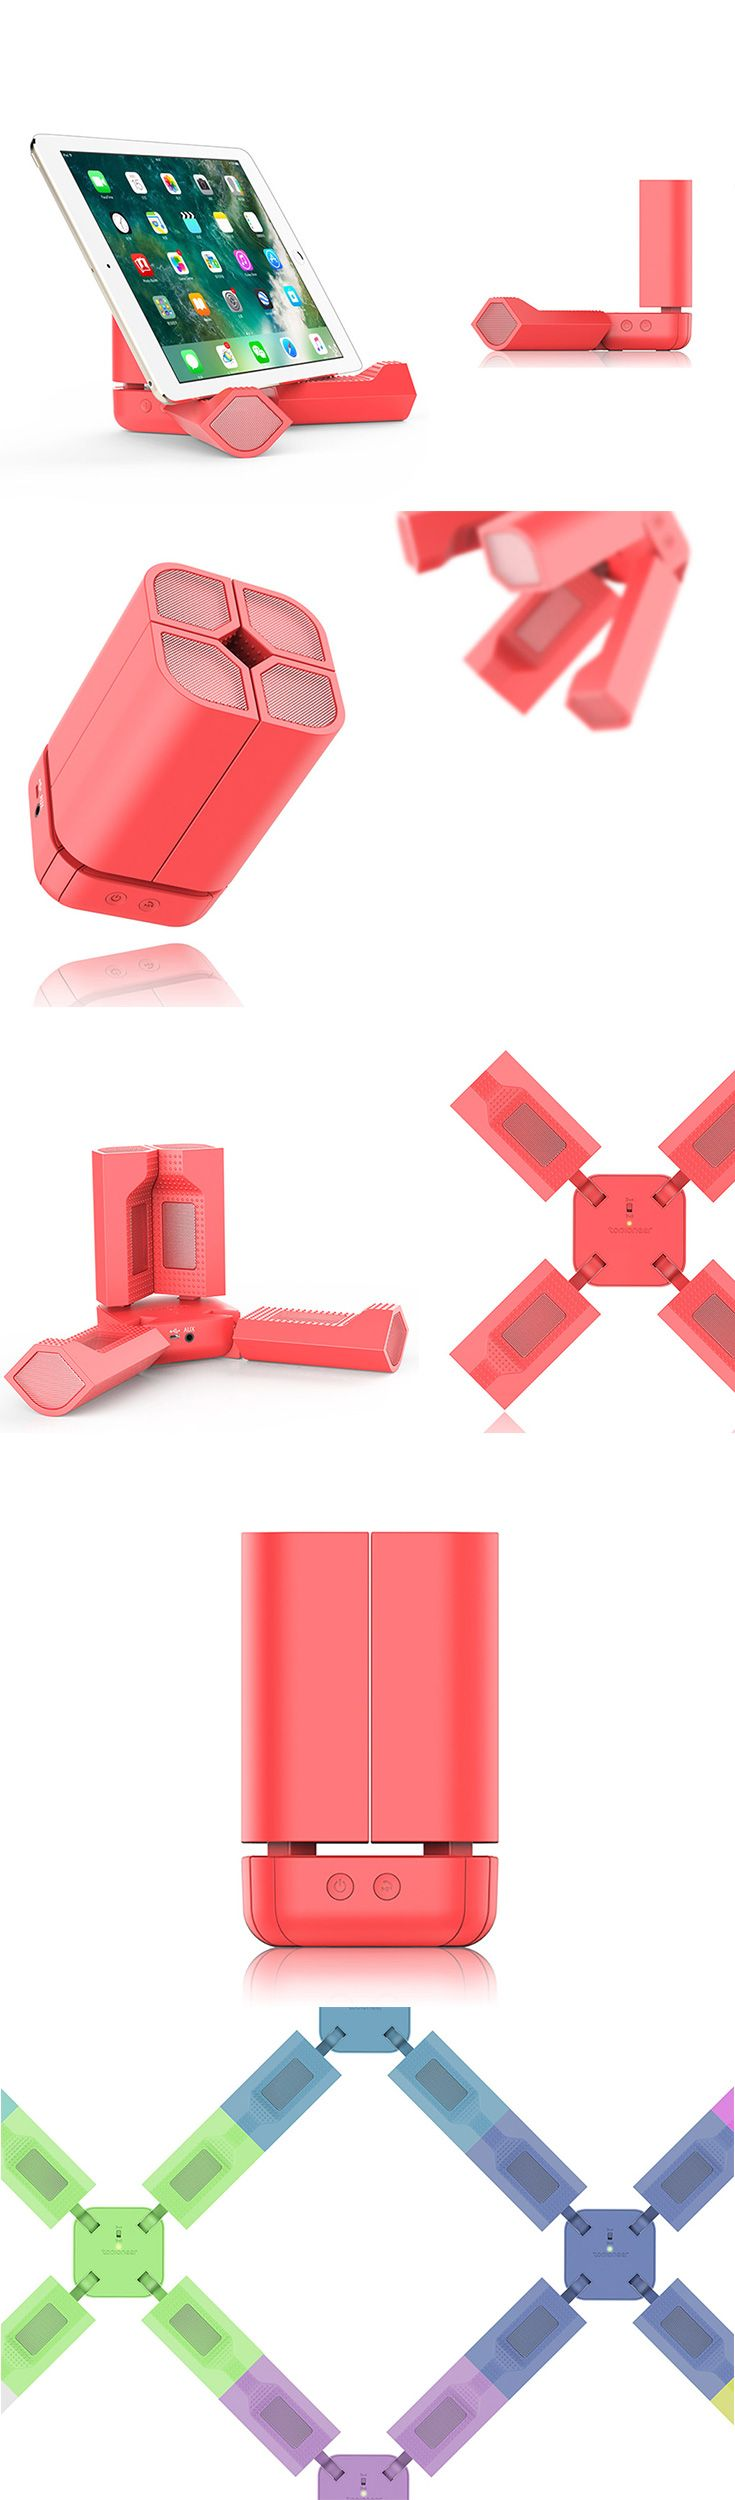 The TransSpeaker aims to be a multifunctional friend! Composed of 4 speaker columns that can be individually adjusted, it can be reconfigured into an unlimited number of different forms for a variety of applications. Fold it up to a surprisingly compact size and take it with you anywhere!